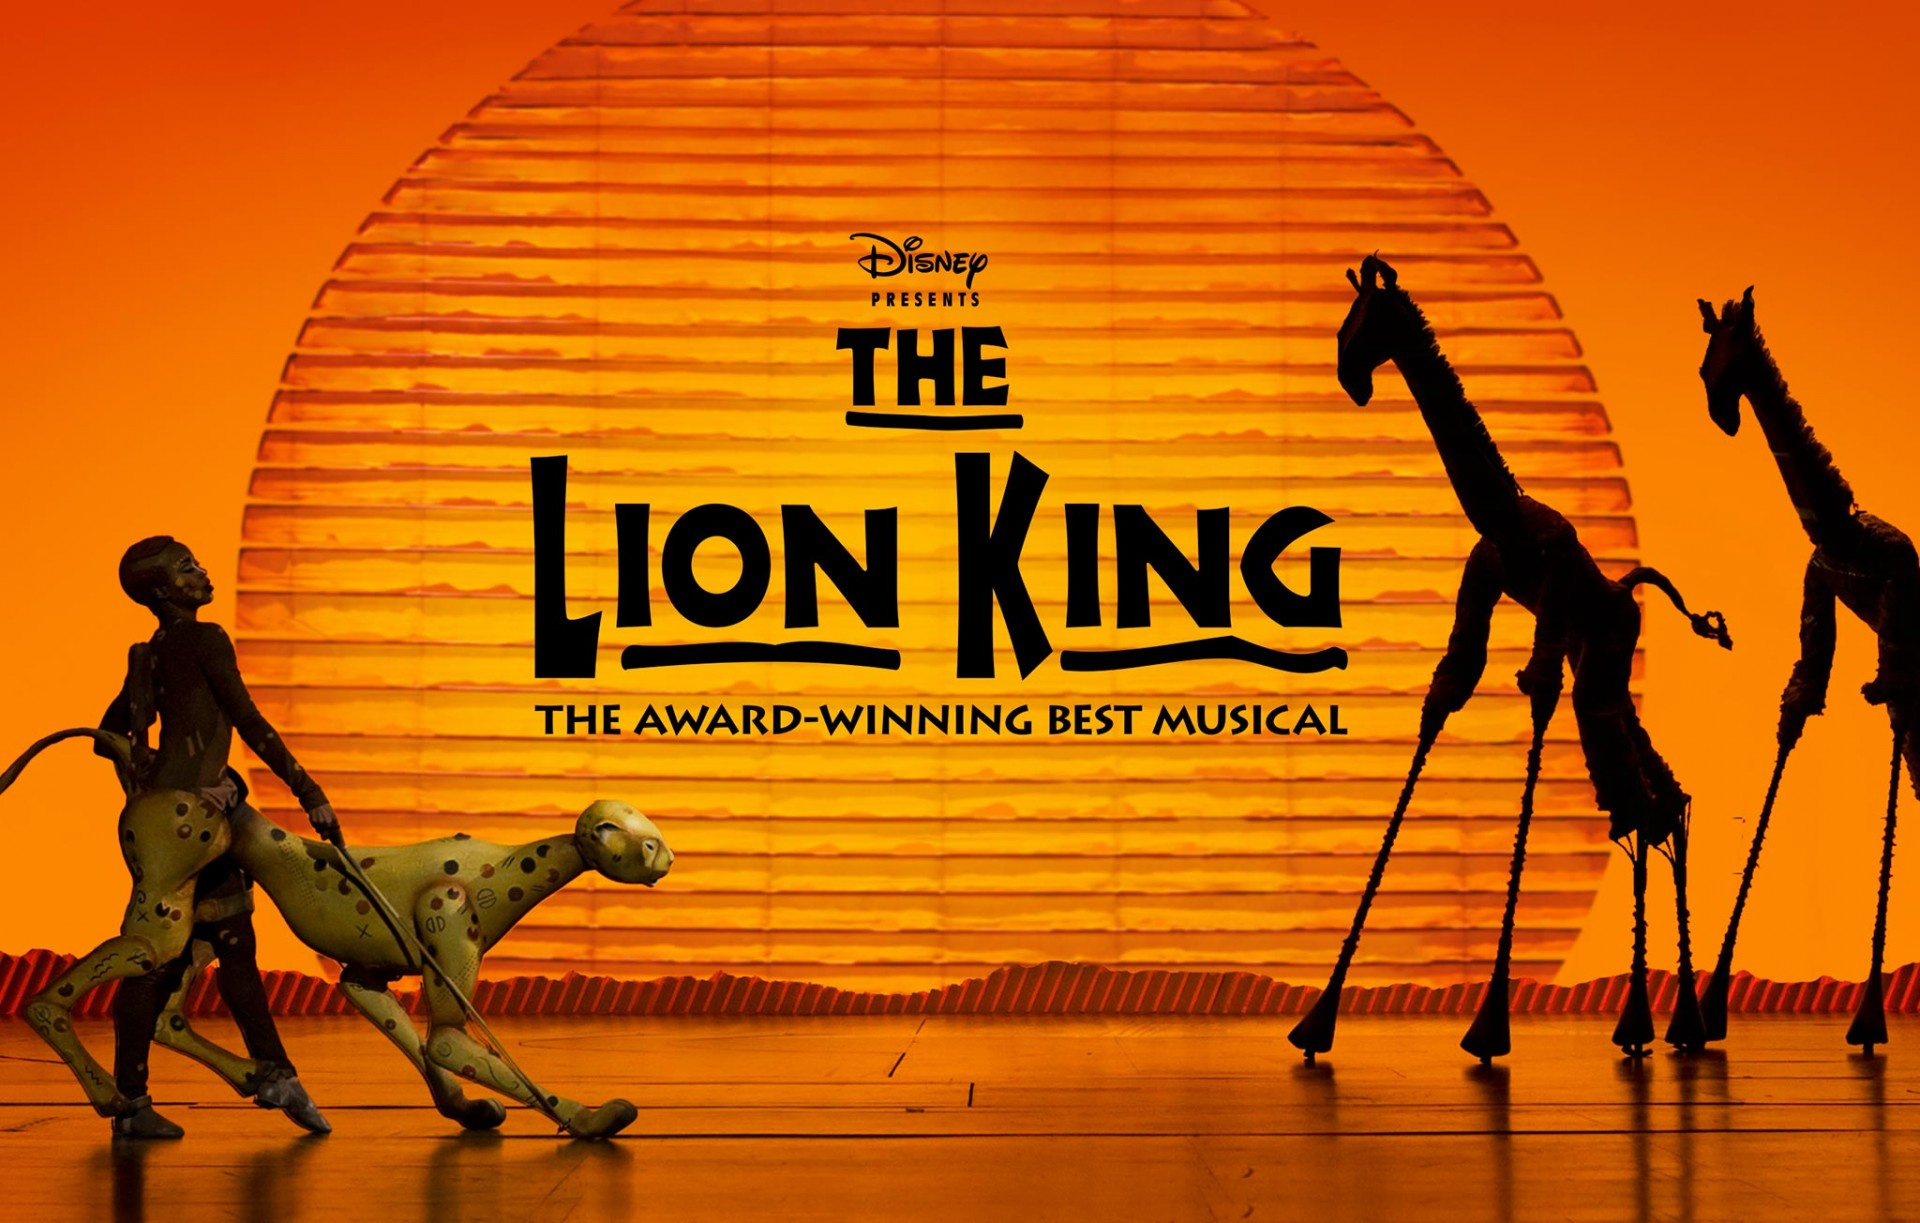 Disney's The Lion King - REGISTER ONLY Price and Specific Dates TBA